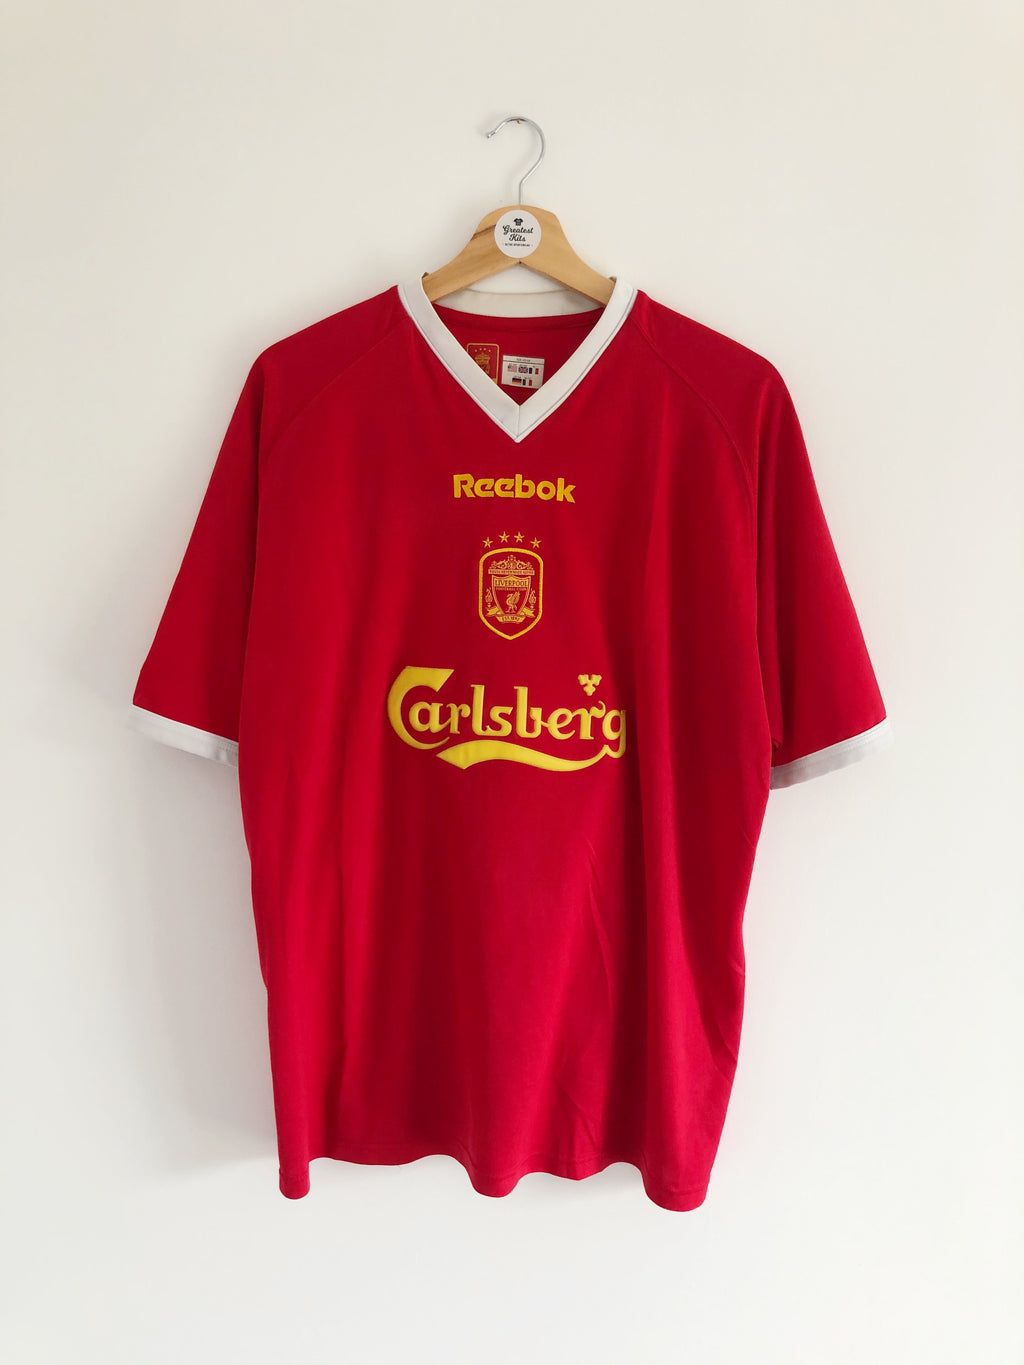 2001/03 Liverpool European Shirt (L) 8.5/10